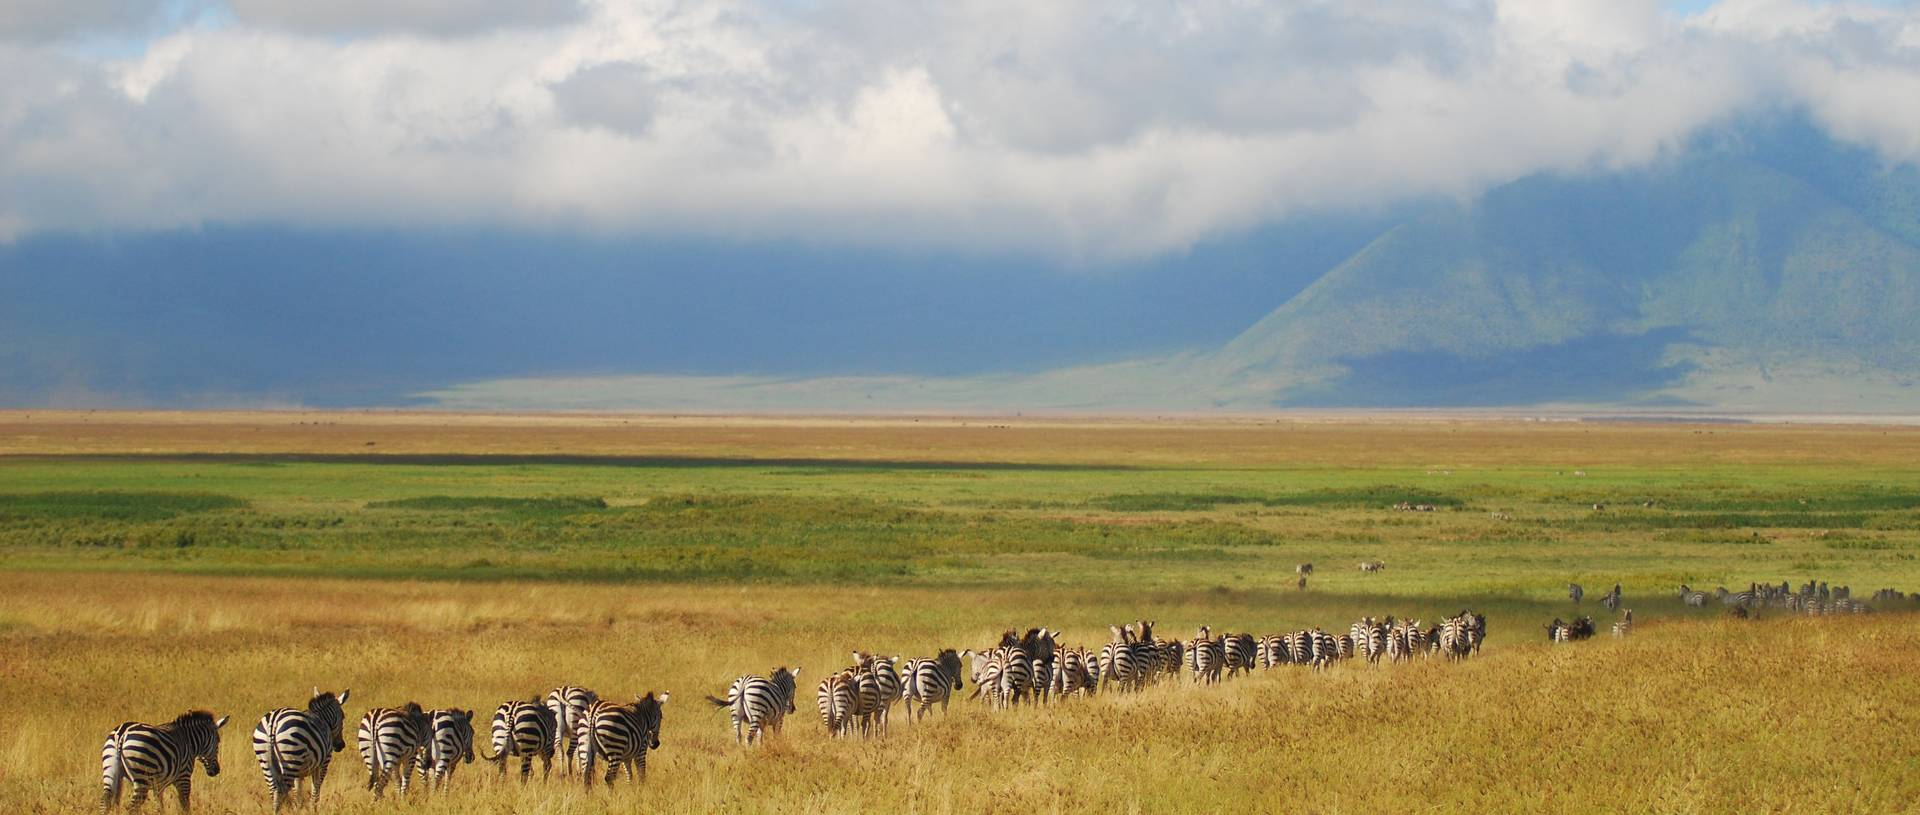 A line of zebras migrating in Ngorongoro Crater, Tanzania